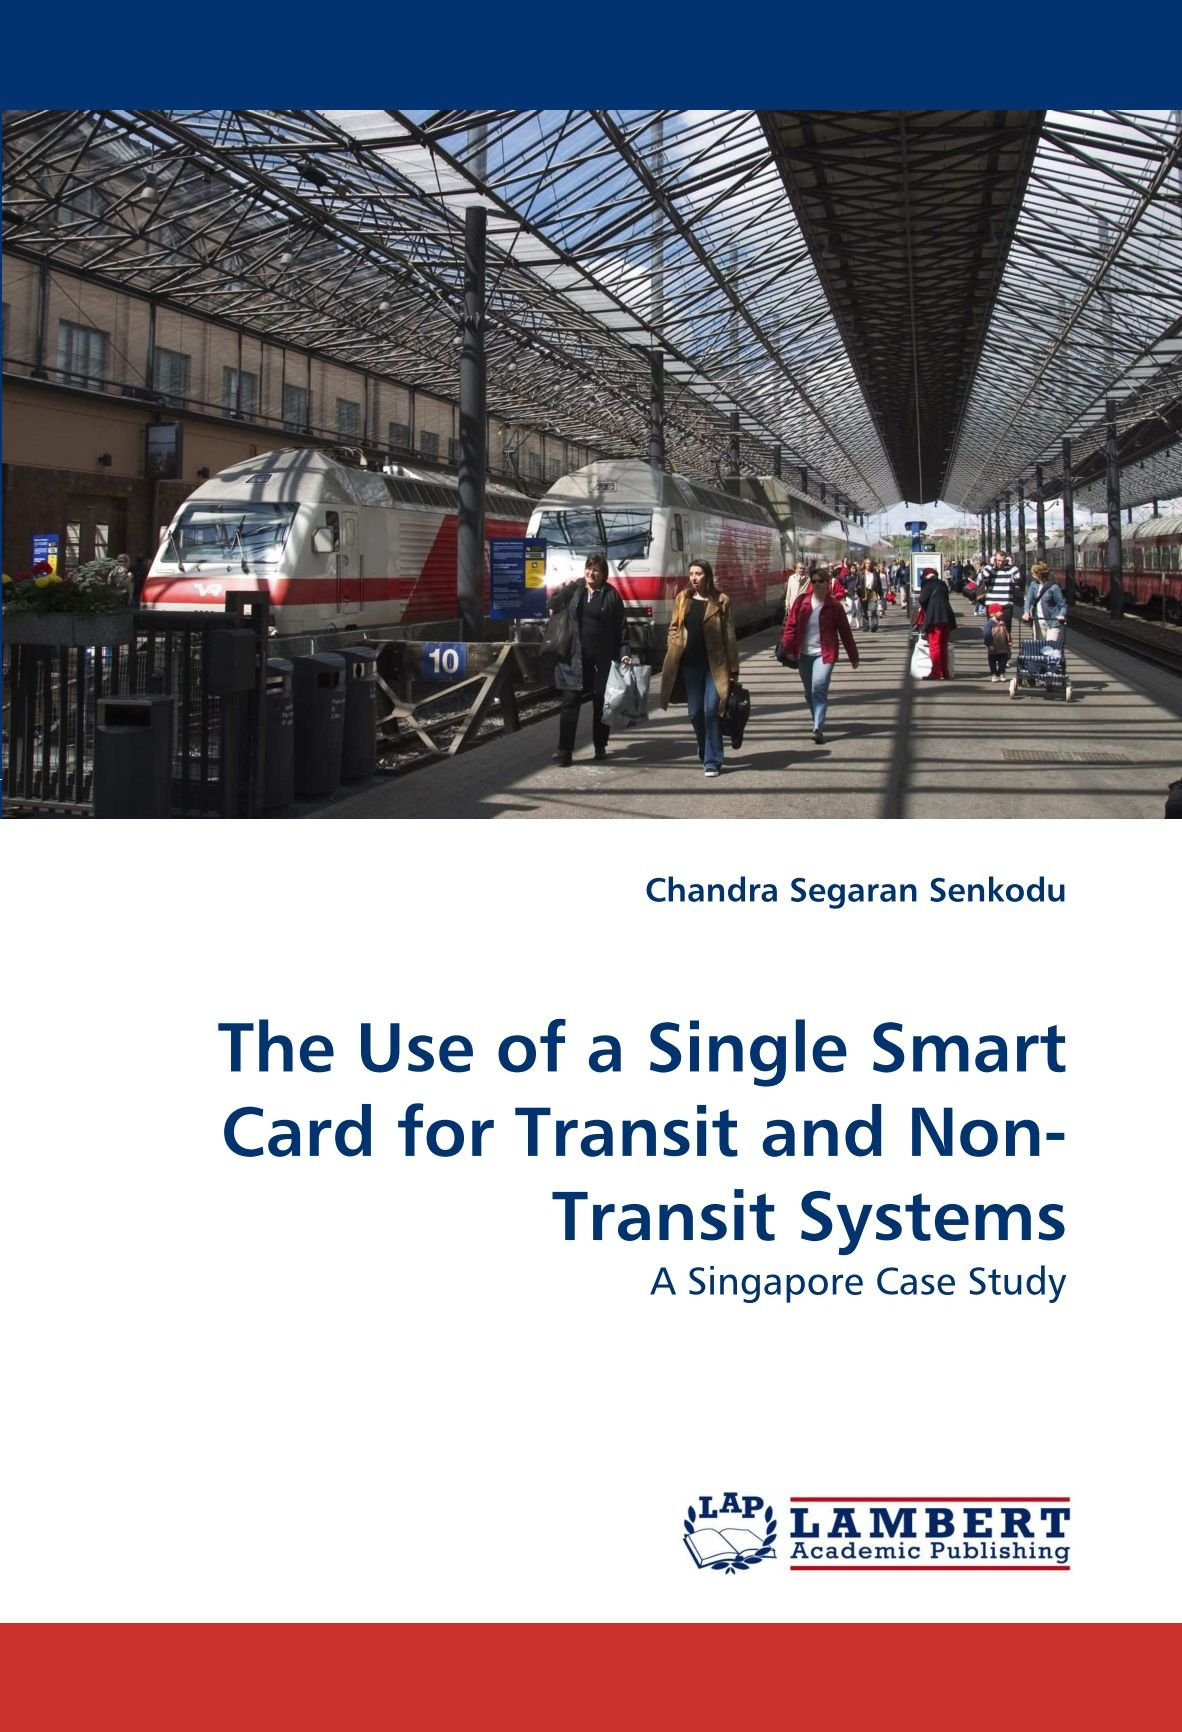 The Use of a Single Smart Card for Transit and Non-Transit Systems: A Singapore Case Study pdf